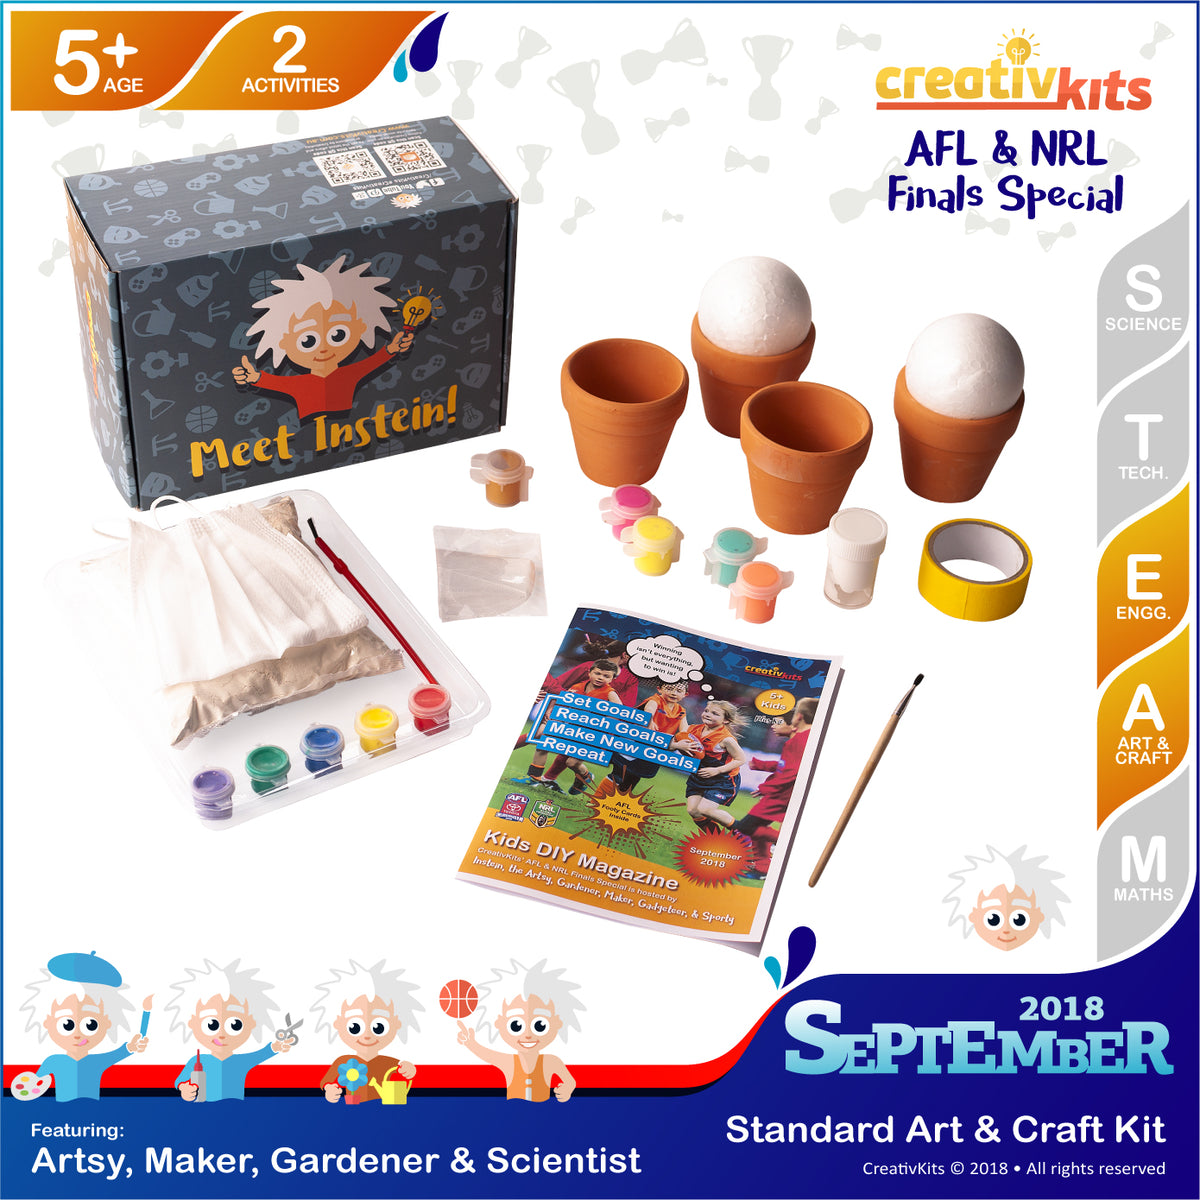 Make Your Own Plaster Handprints and Mini Succulent Garden | Sep. Standard Art & Craft Kit | Age 5+